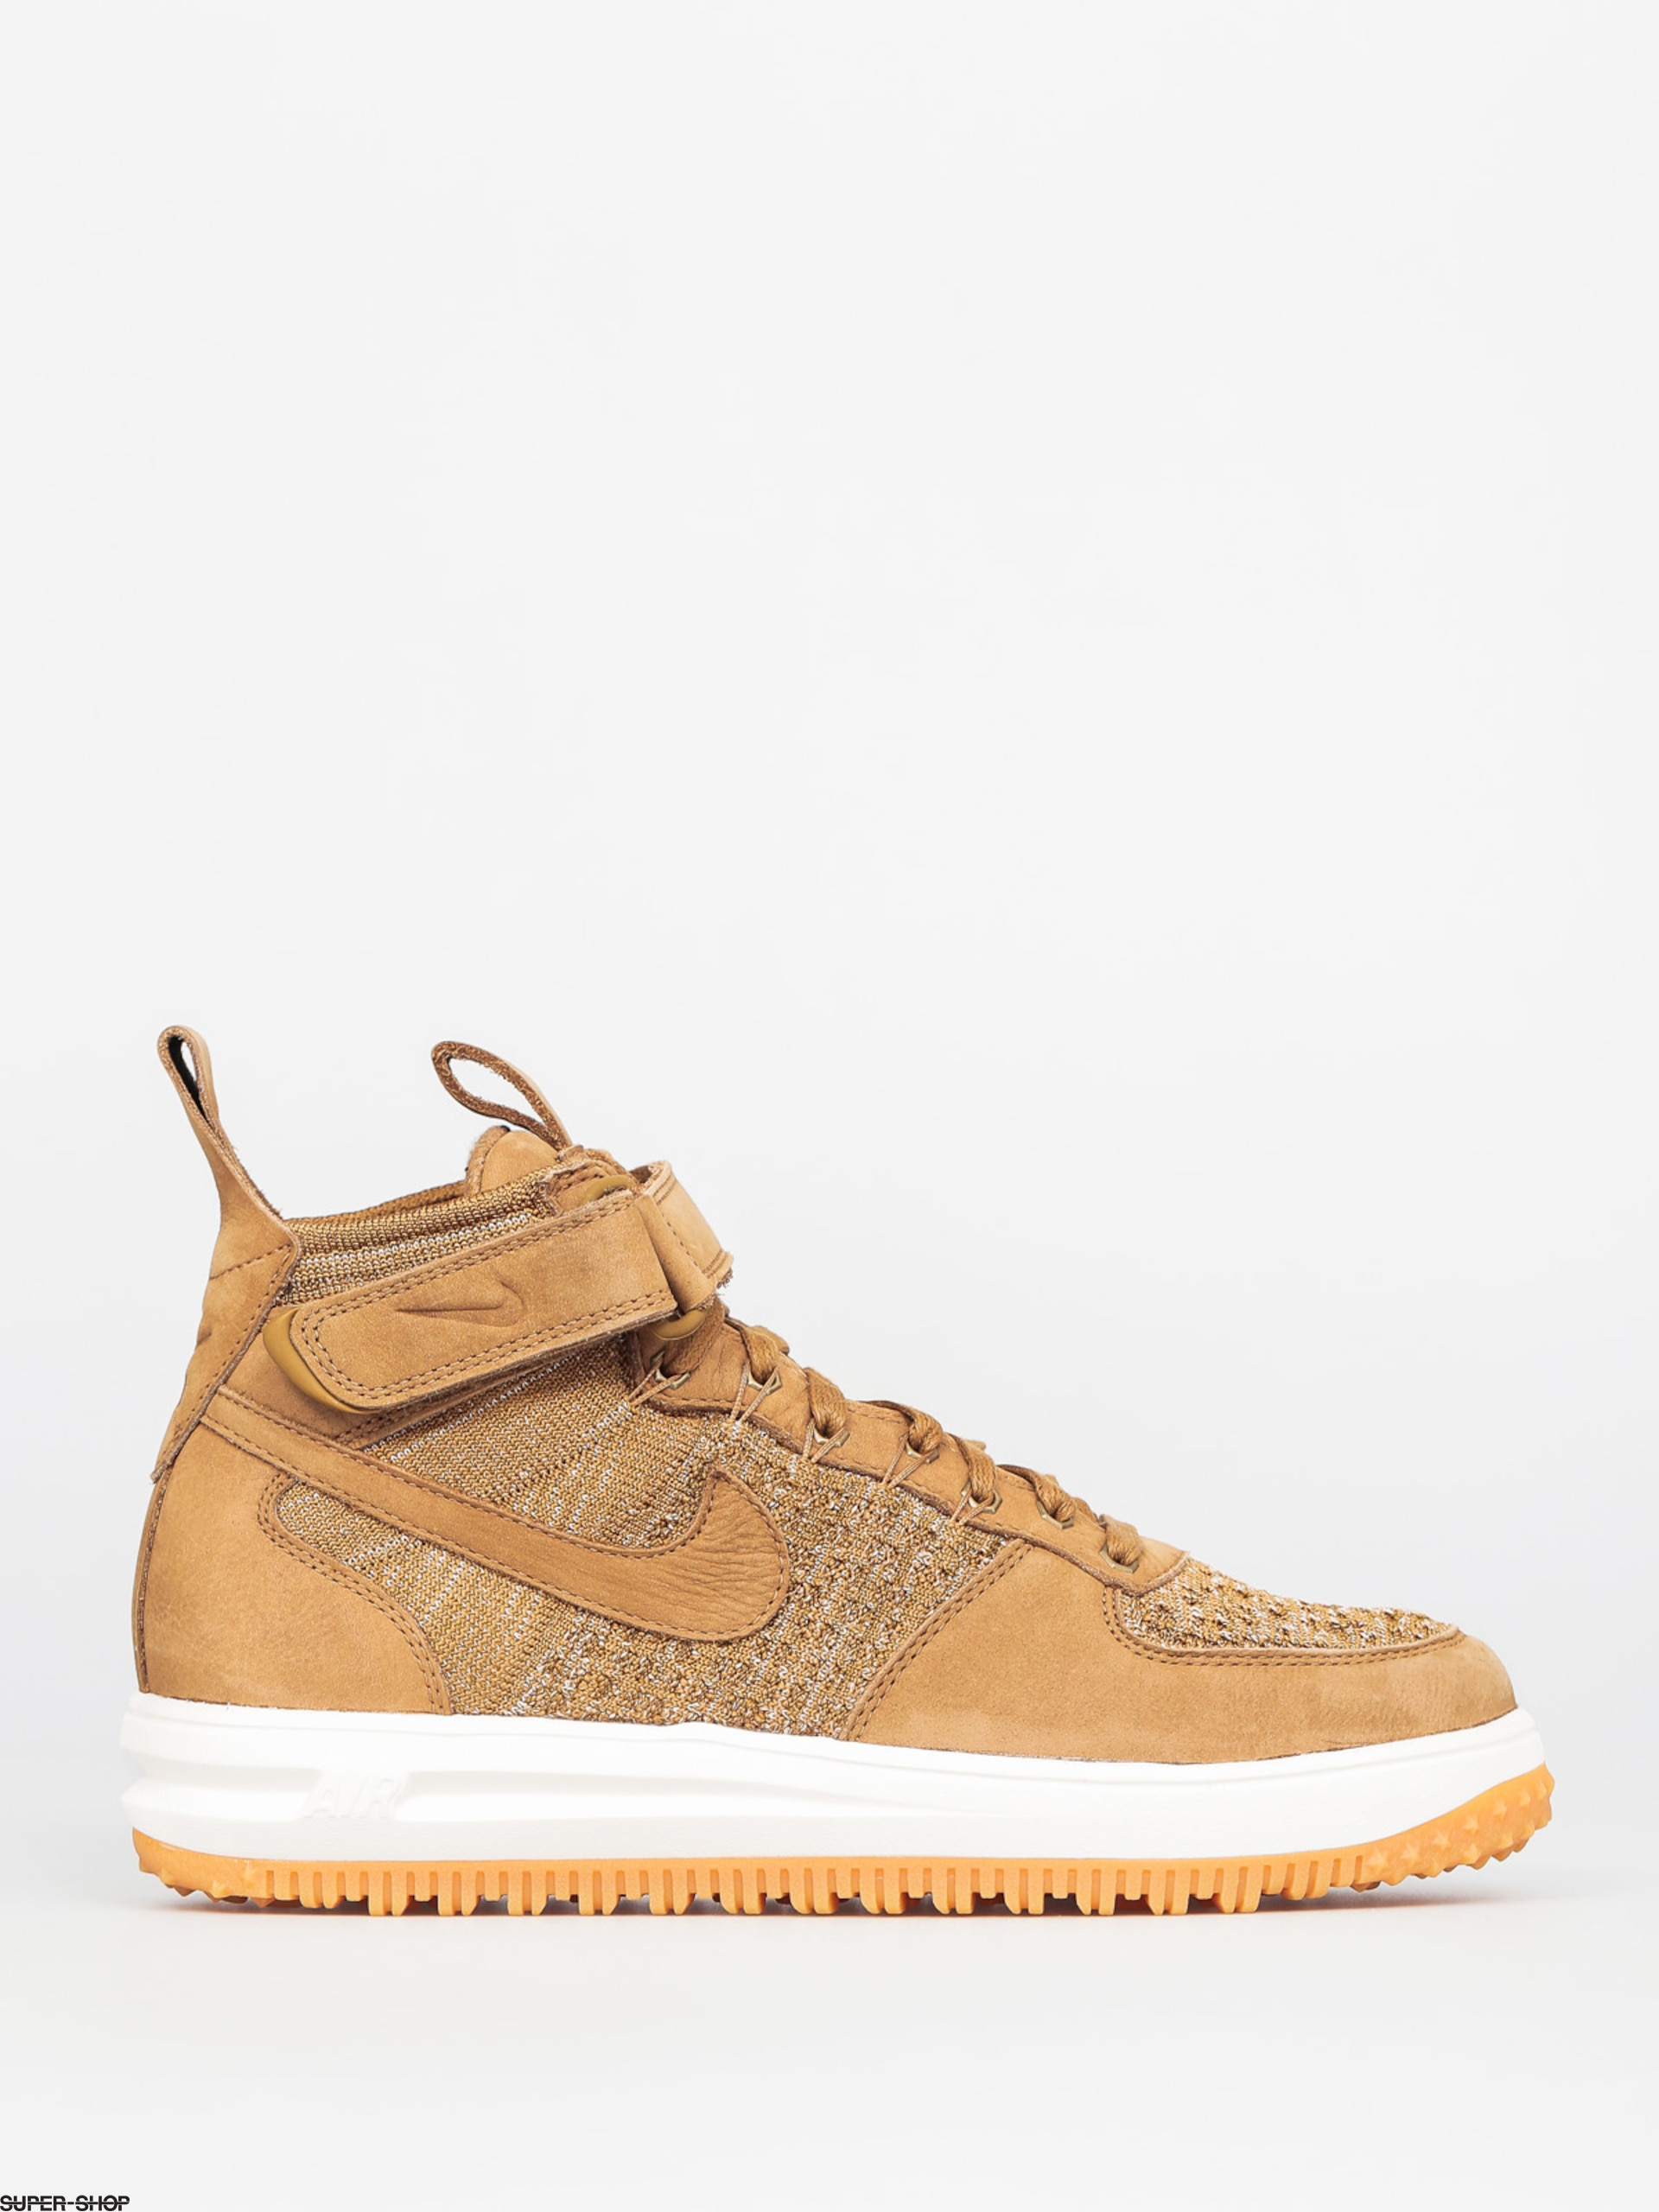 Nike Shoes Lunar Force 1 Flyknit Workboot